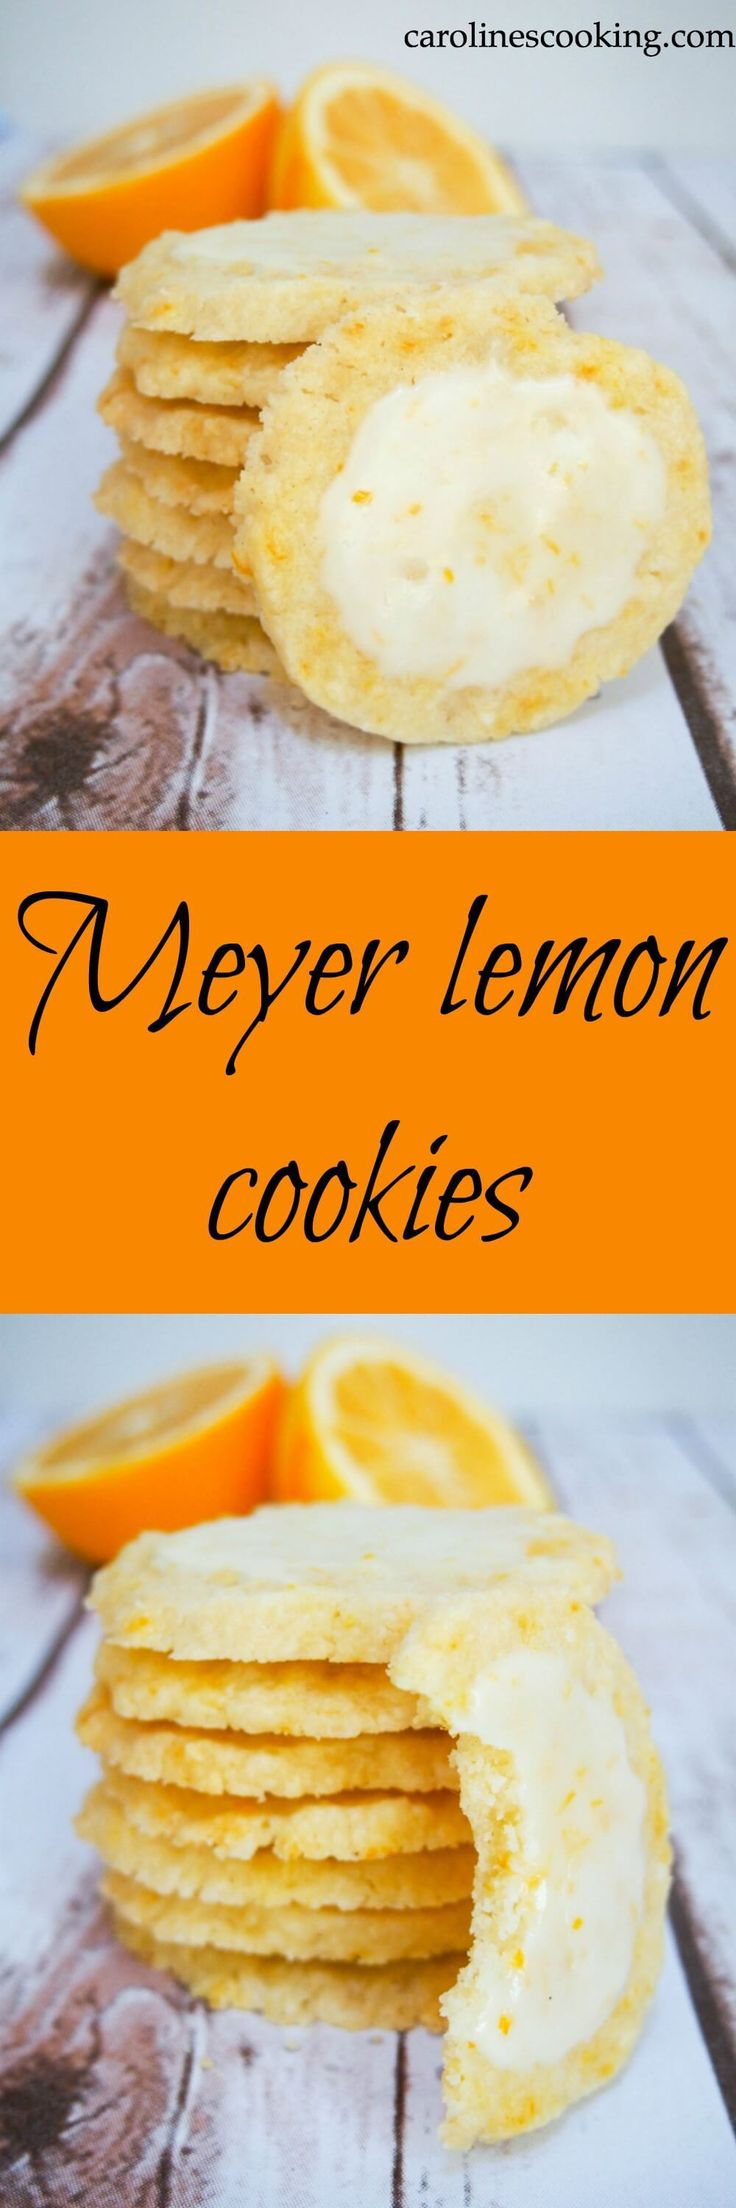 These Meyer lemon cookies are a wonderful balance of fresh citrus, sweetness and melting crumbliness. So good, a delicious cookie plate addition.